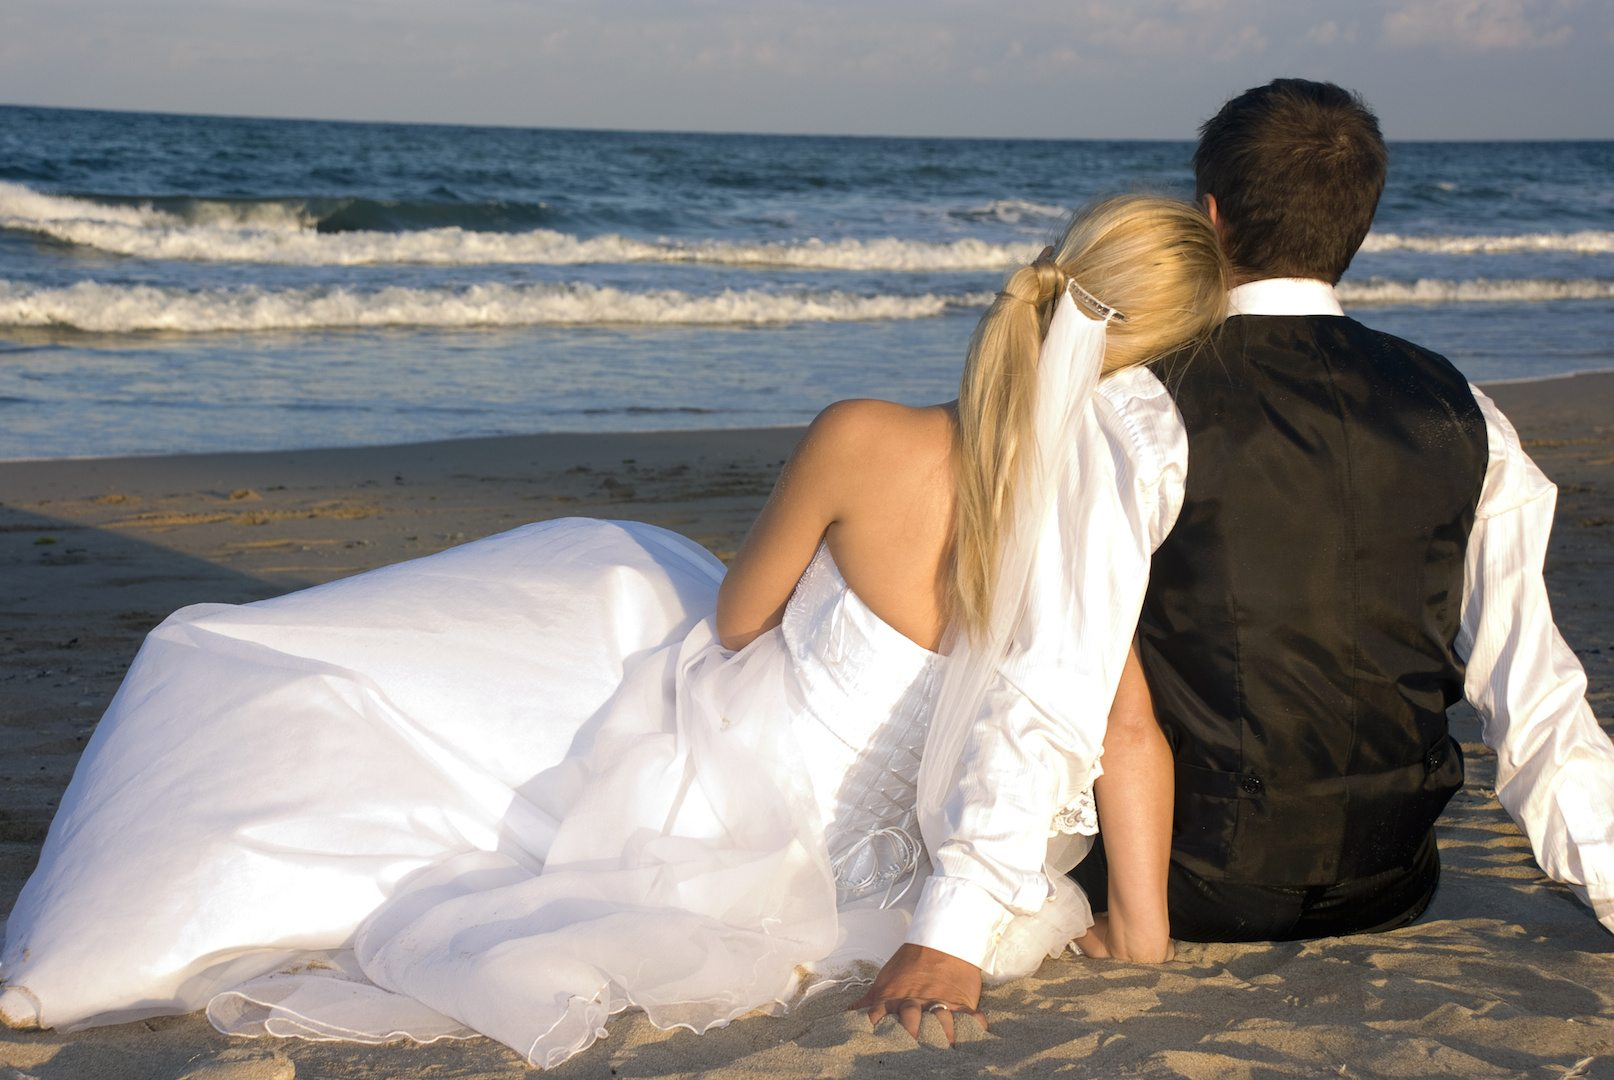 Married Dating - Free Online Dating Site - Married